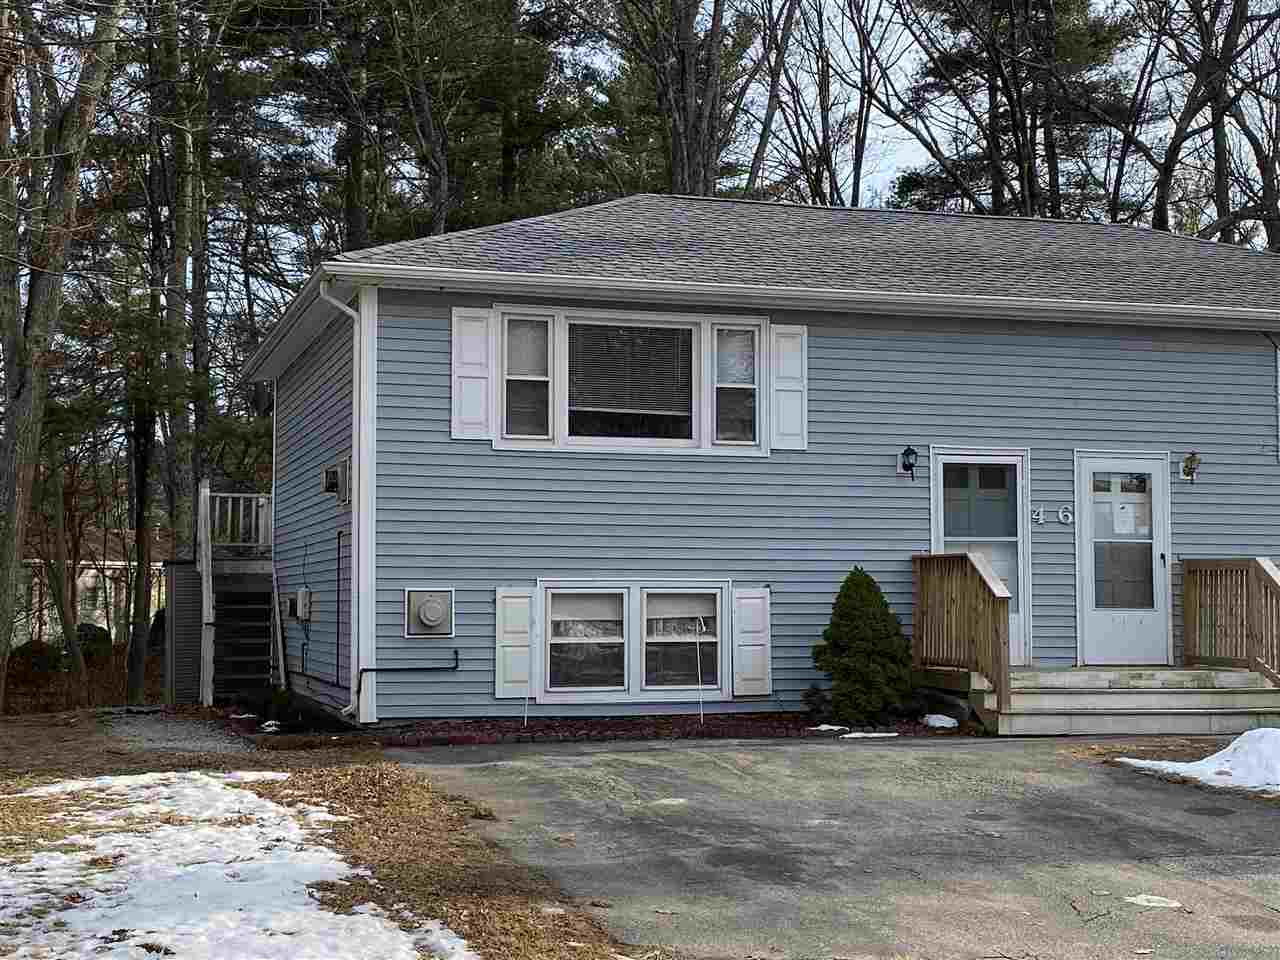 MLS 4788975: 46 Derryfield Road-Unit L, Derry NH